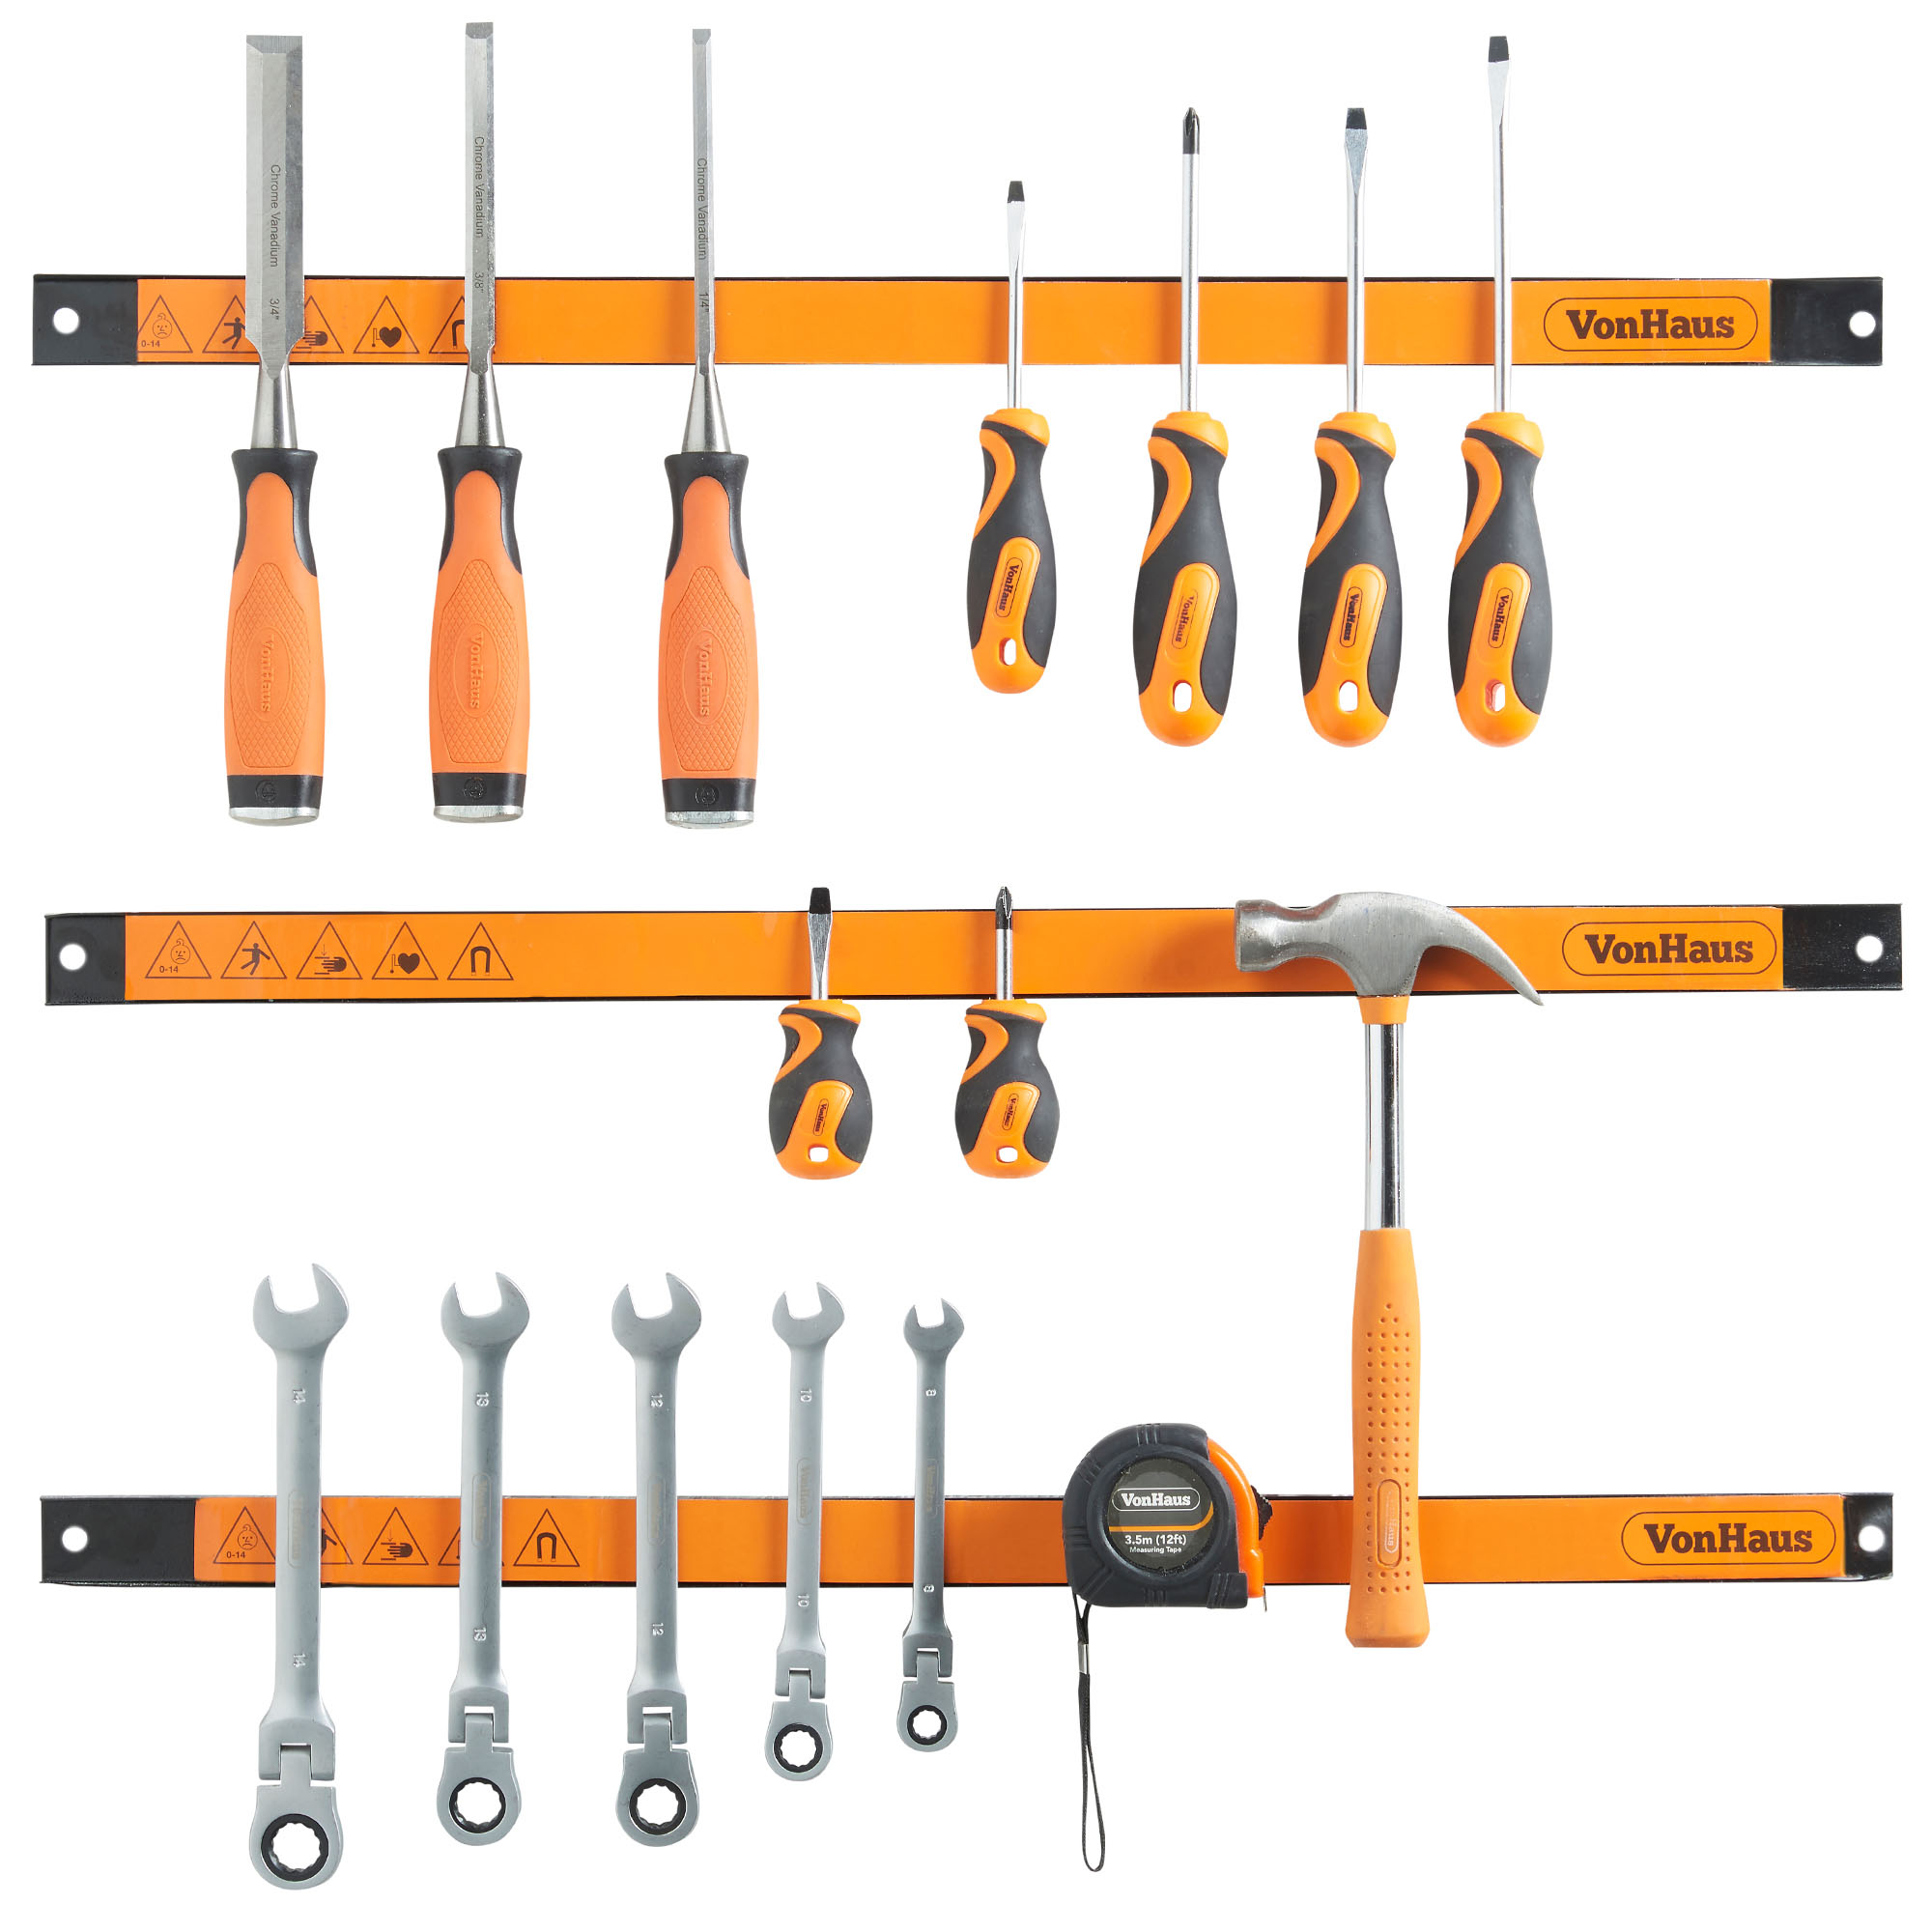 "VonHaus 3 X 24"" Piece Magnetic Tool Holder Strip Racks - Extra Large Organizer Bar Set Ideal for Garage and Workshops (Mounting Screws Included)"